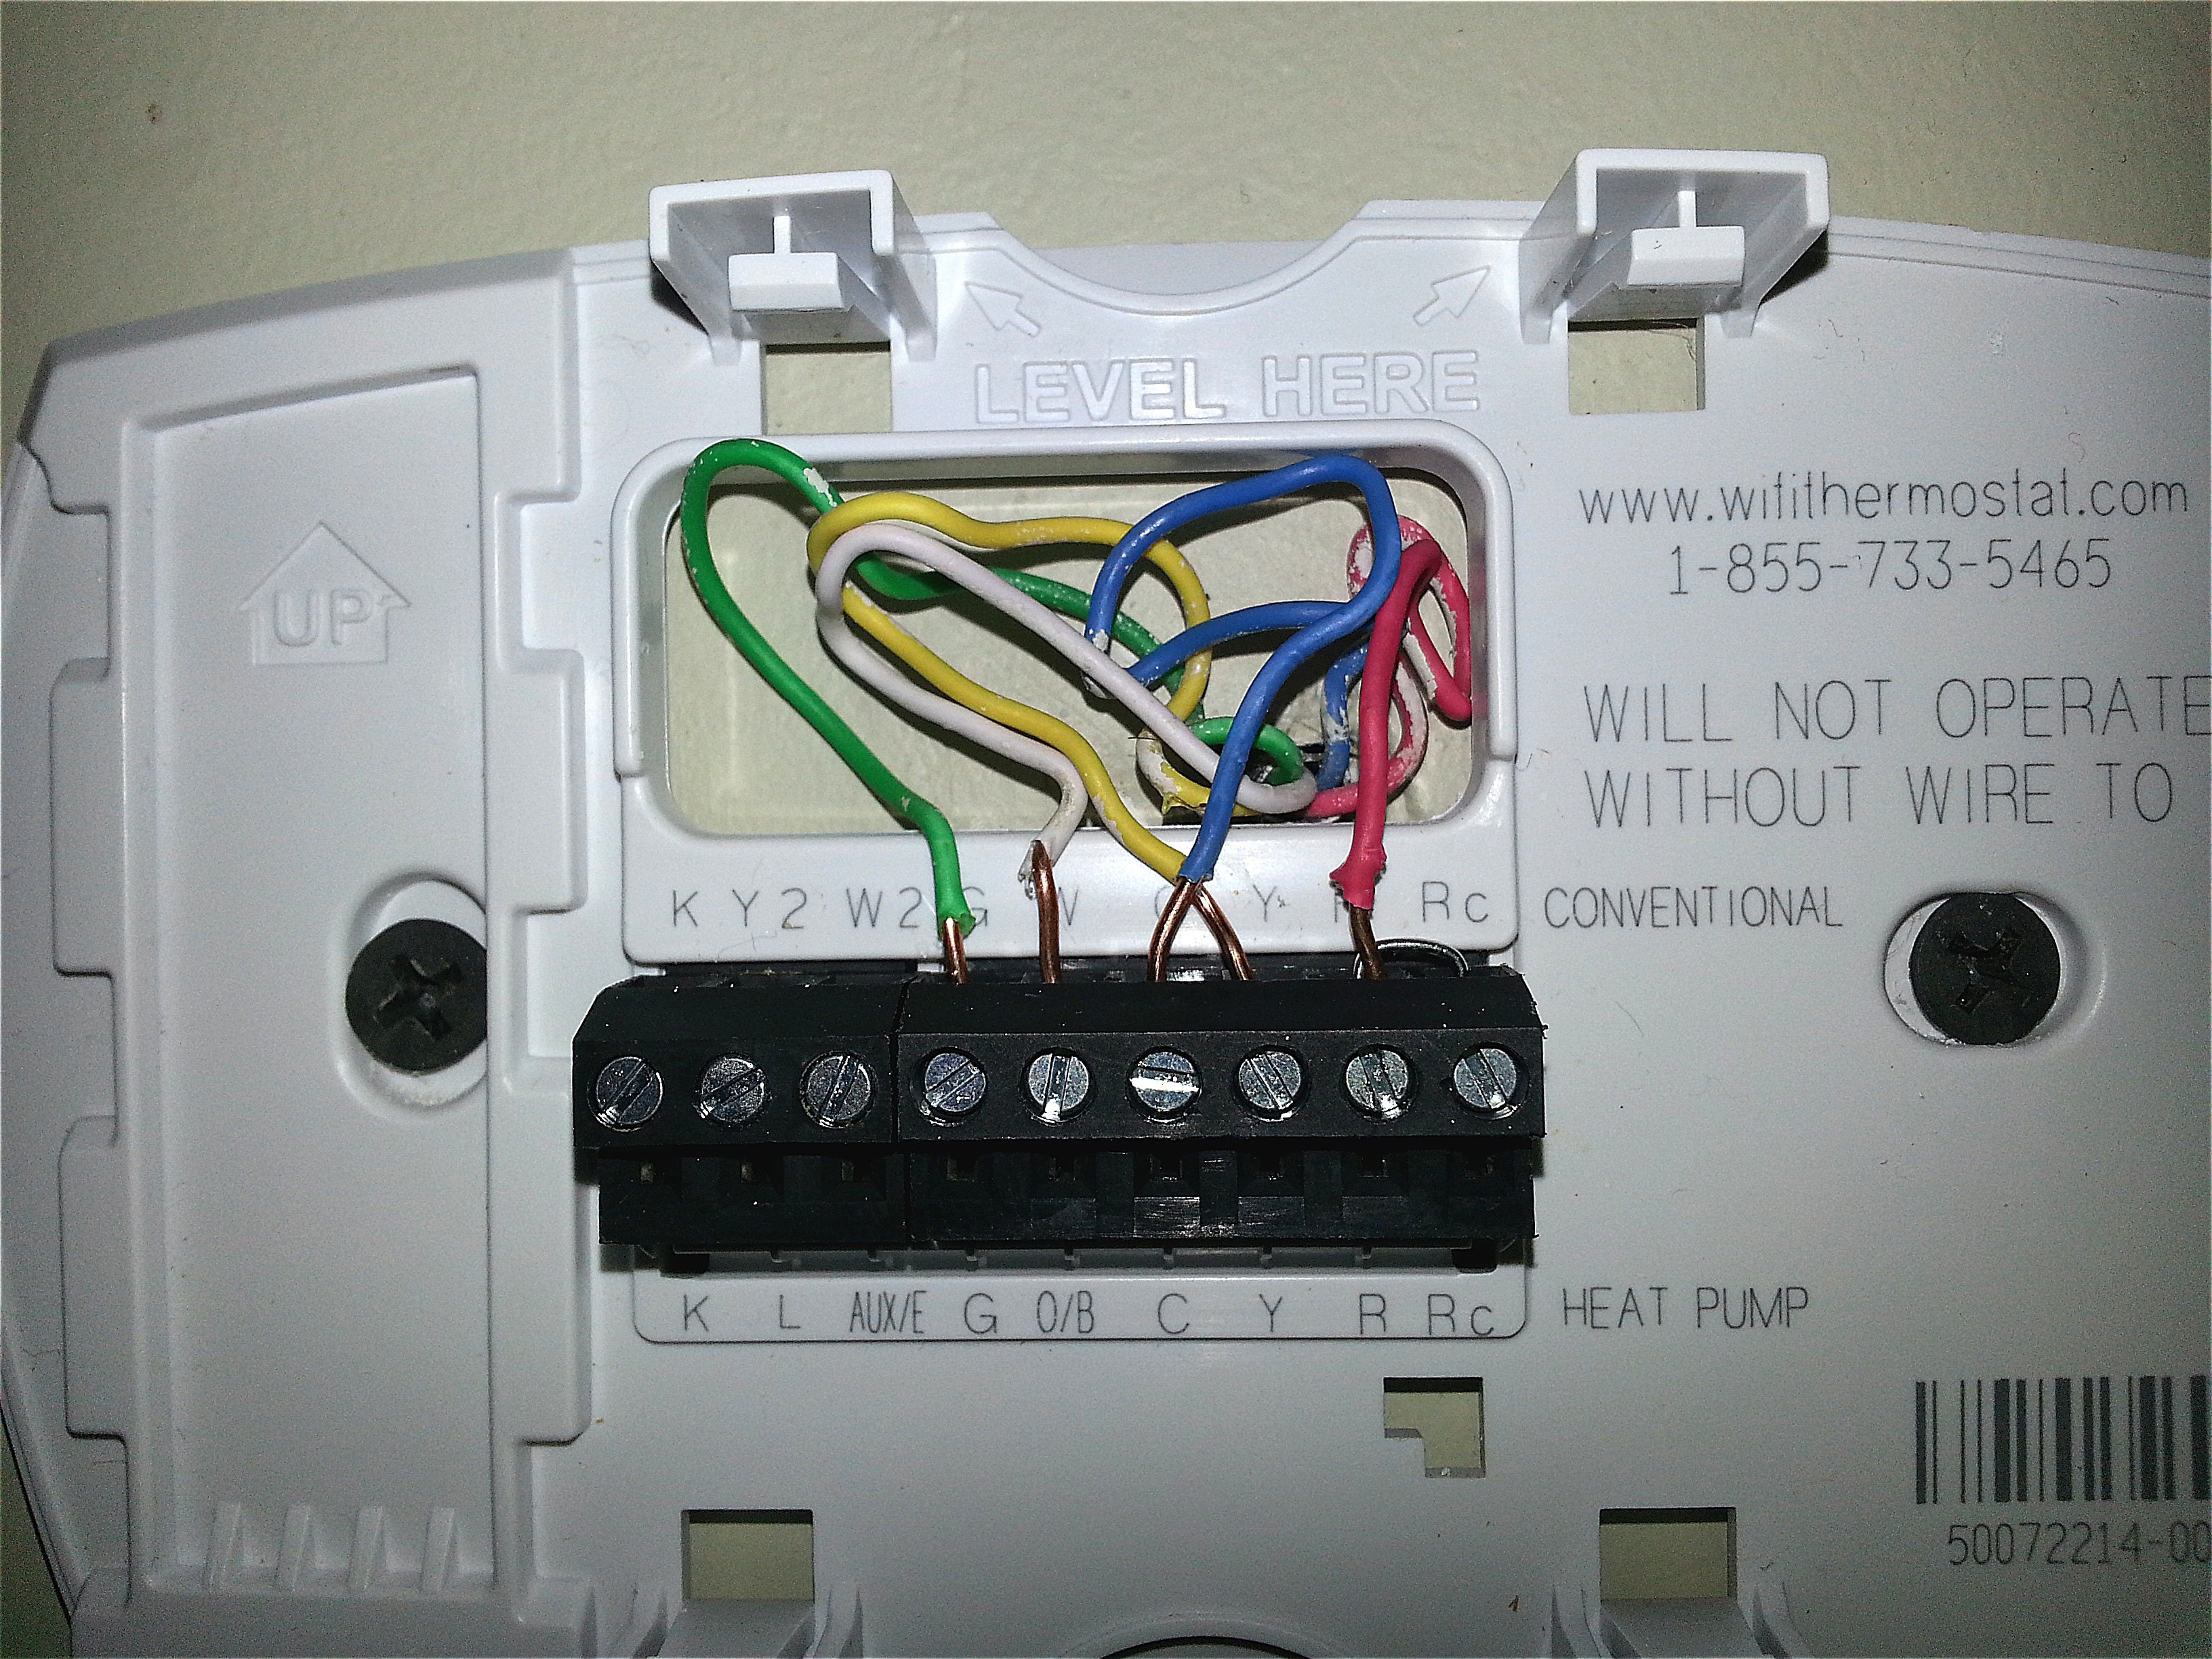 honeywell digital thermostat wiring diagram Collection-Wiring Diagram for Honeywell Wall thermostat New Diagrams Rth230b Honeywell thermostat Wiring Diagram for 5-t